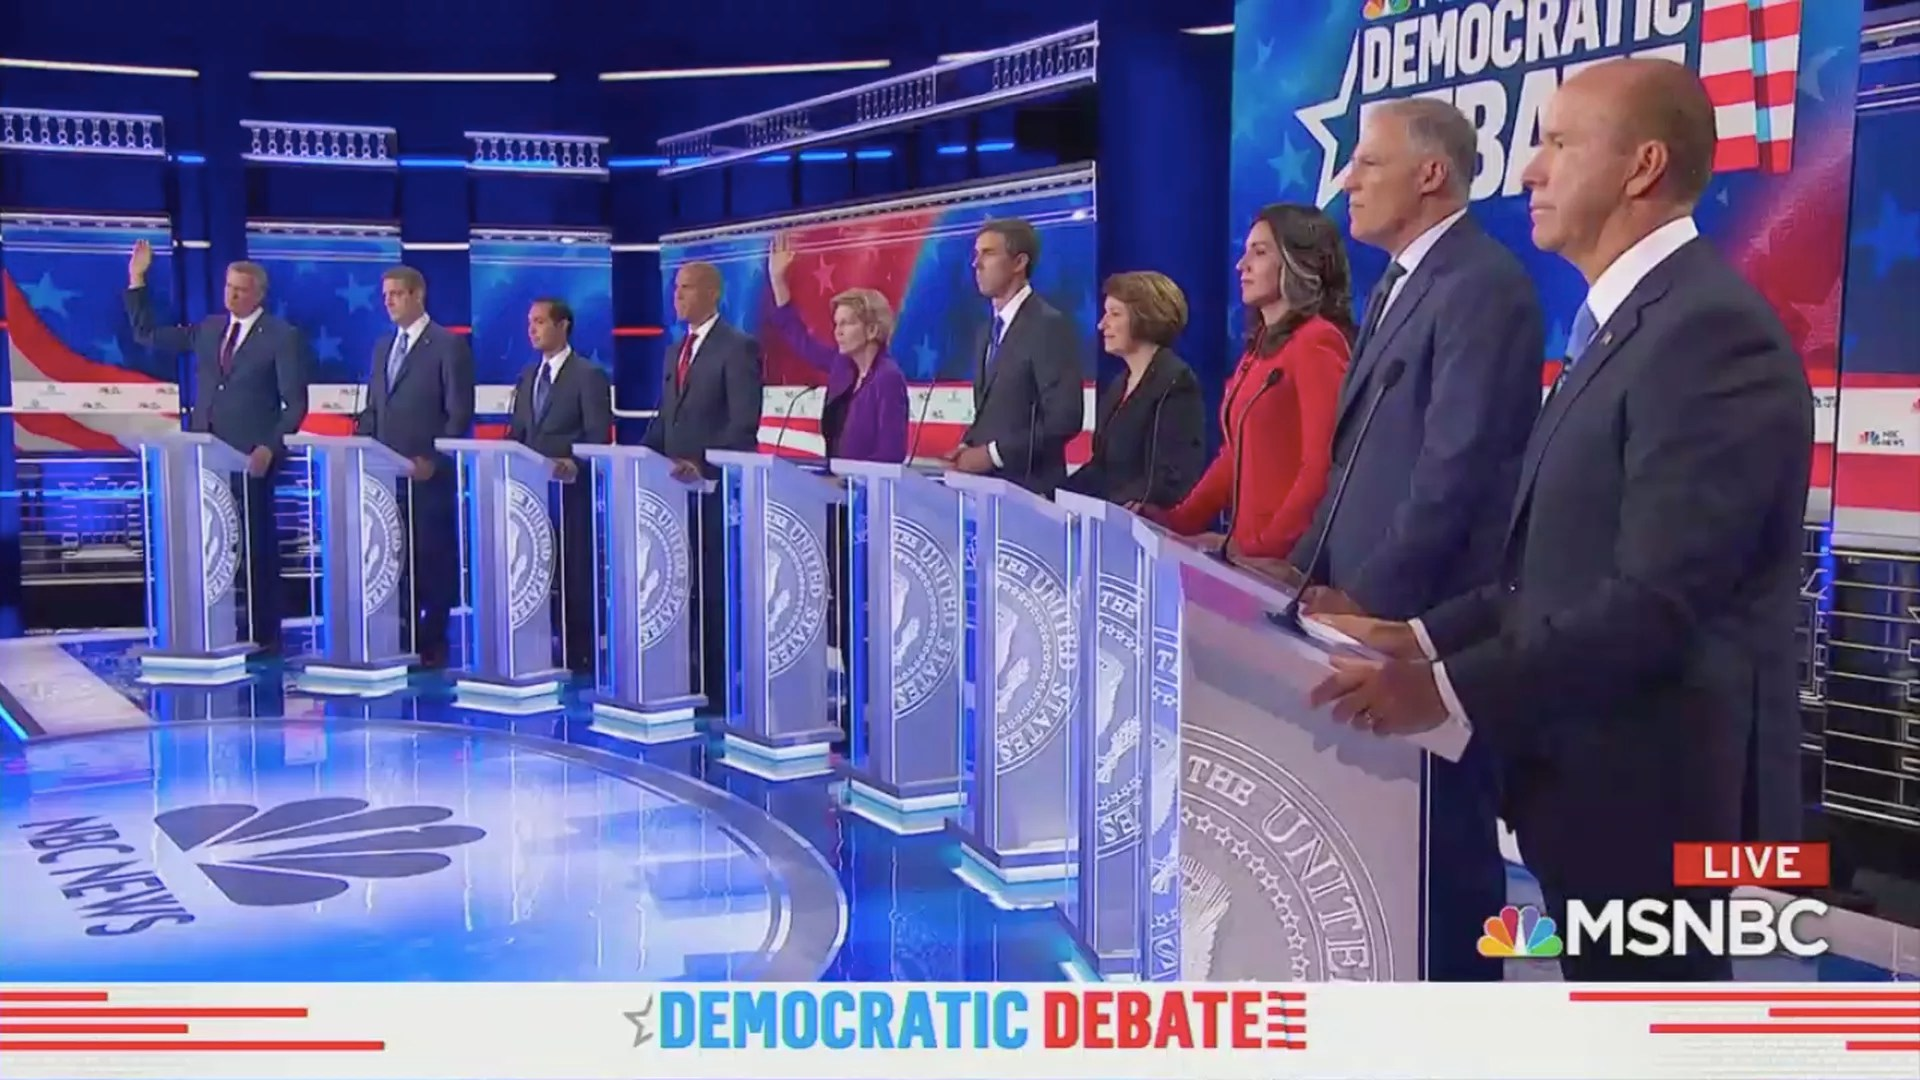 Highlights From 1st Democratic Presidential Primary Debate